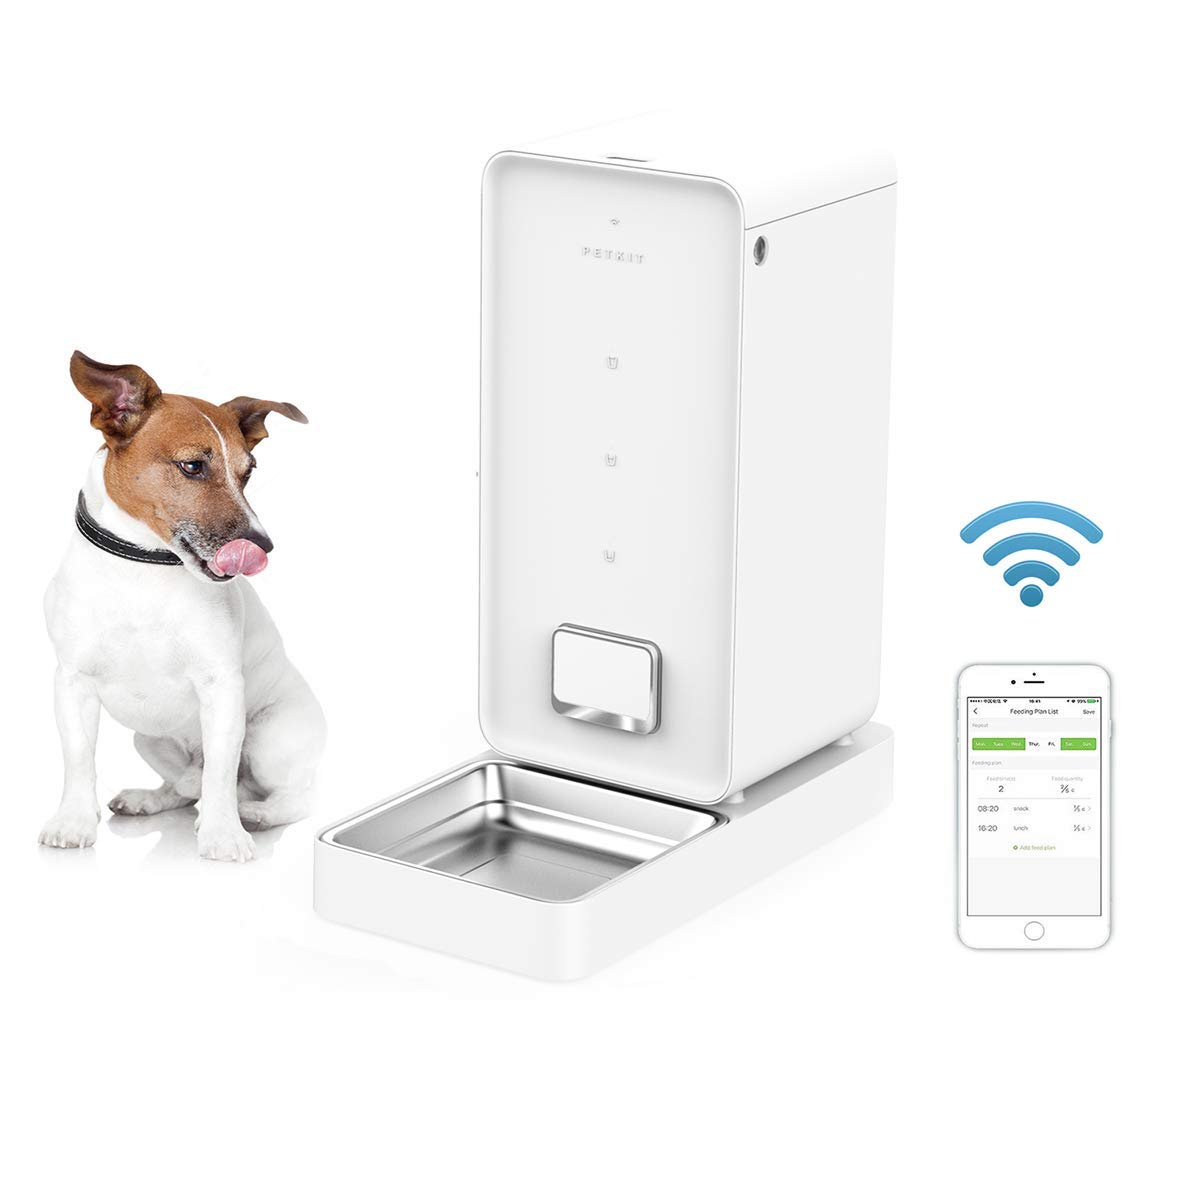 The Best Pet Tech & Gadgets Your Dog Needs in 2019